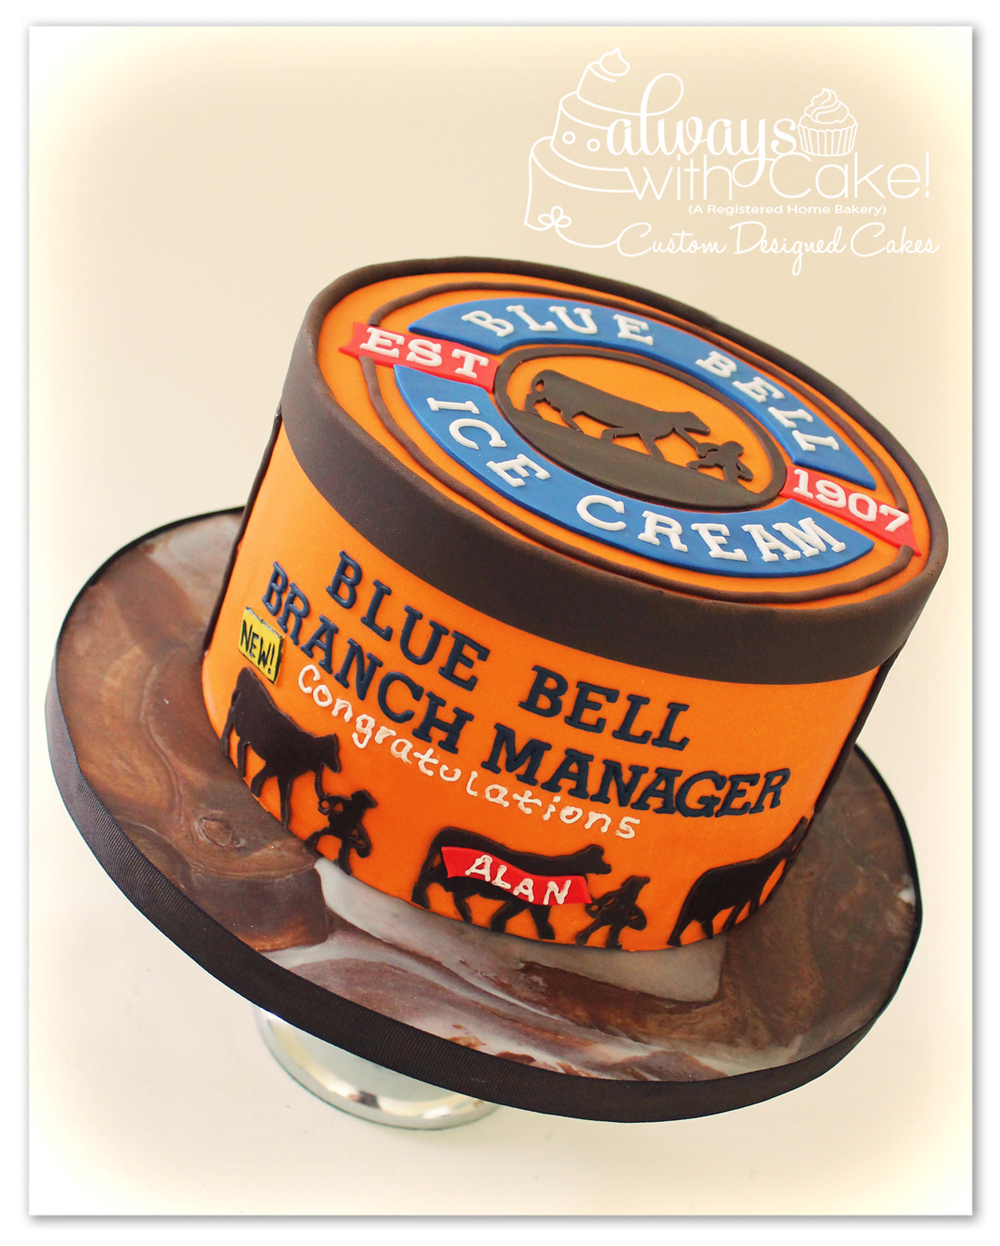 Blue Bell Ice Cream Tub Cake